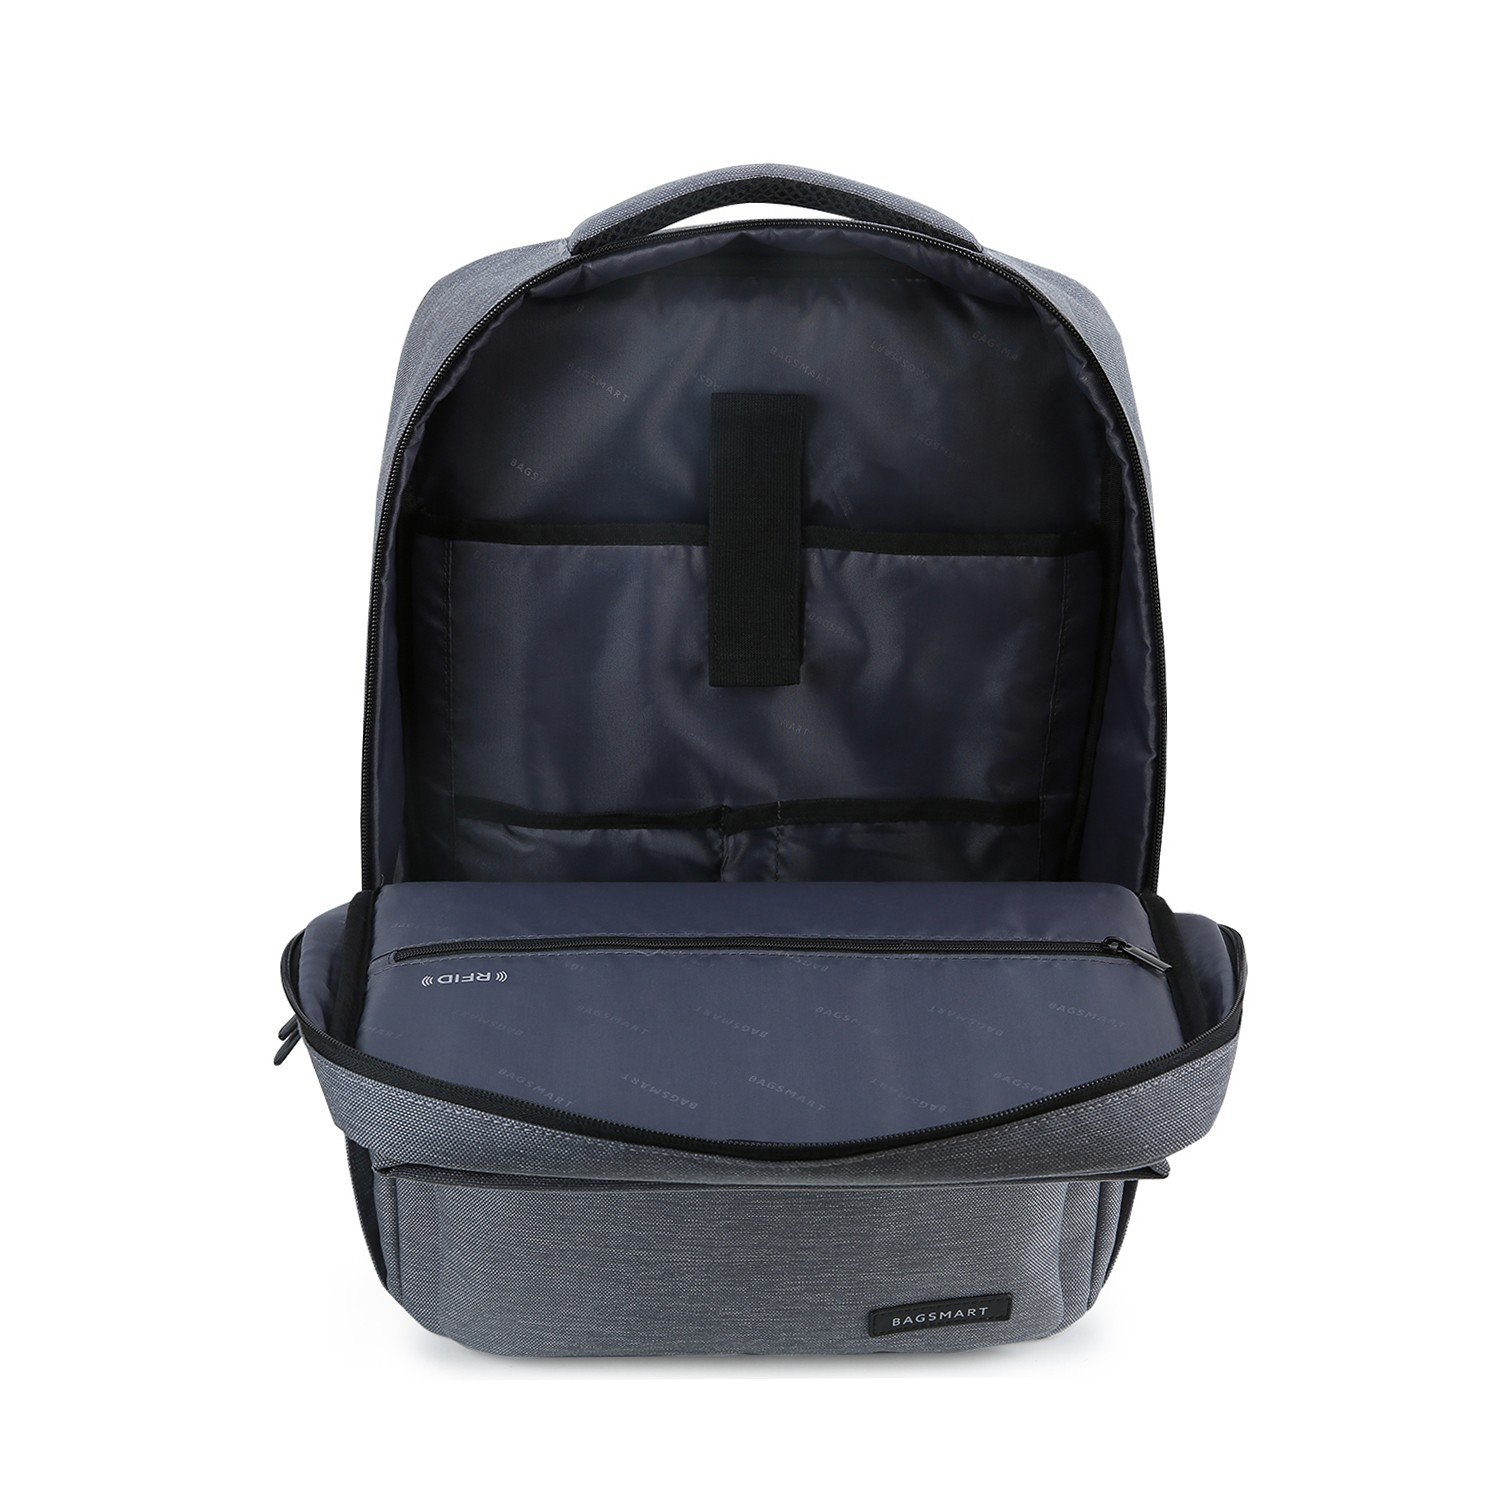 Laptop Bag Manufacturers, Laptop Bag Factory, Supply Laptop Bag